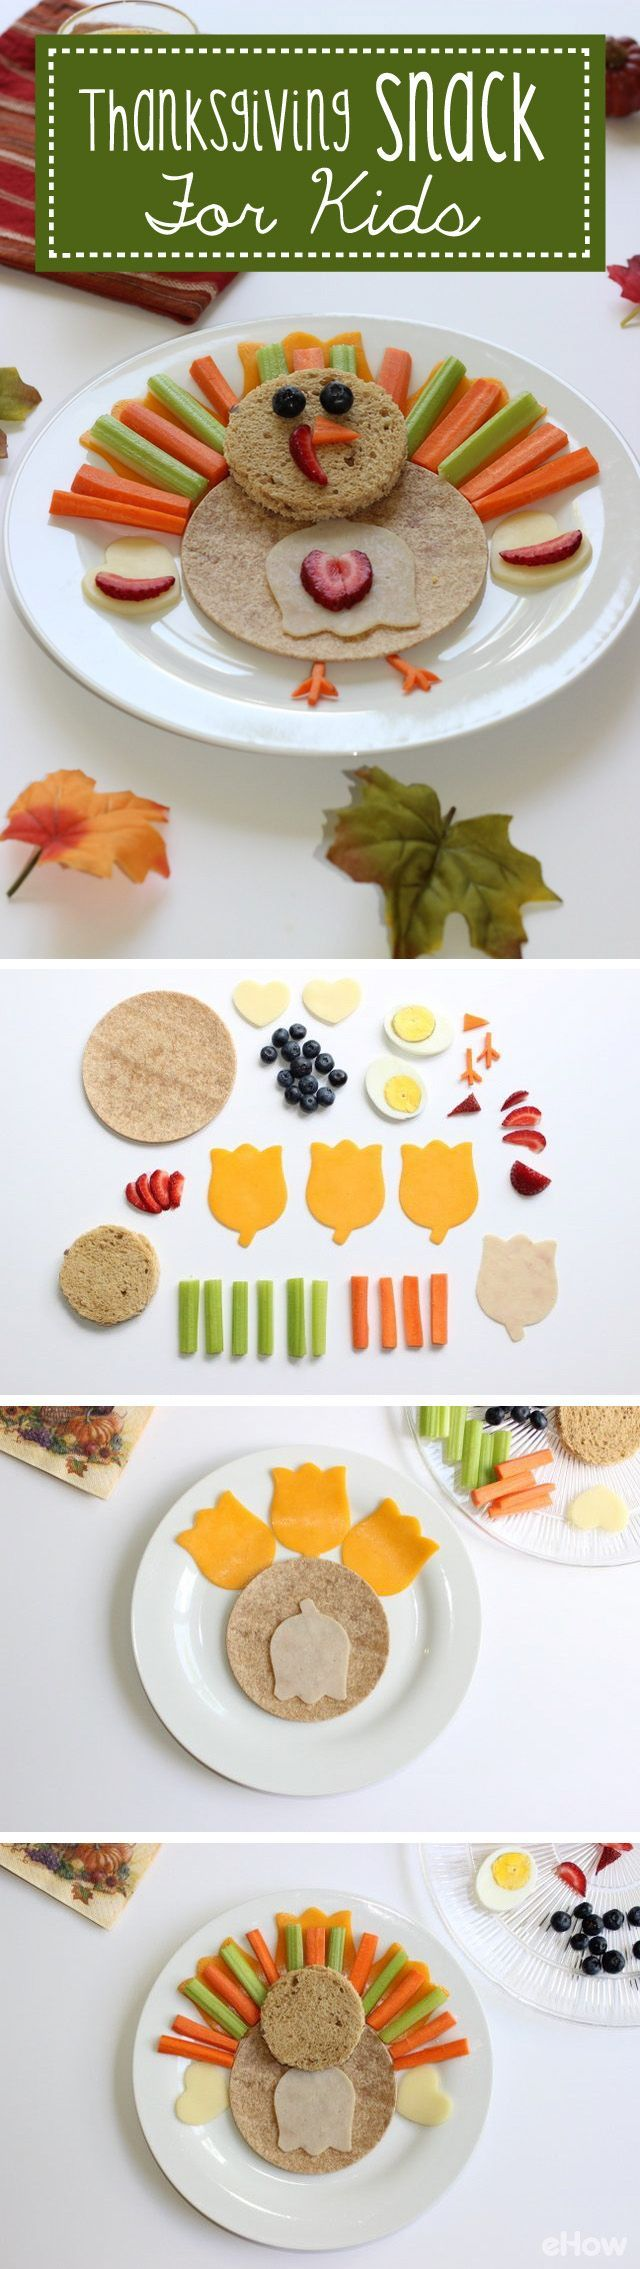 Play with your food, and eat it too! This Thanksgiving, make your kids smile by mixing playtime and snack time with this edible DIY. Not only will it promote healthy eating habits, but your kids will love putting them together, too. http://www.ehow.com/how_12340973_diy-thanksgiving-snack-kids.html?utm_source=pinterest.com&utm_medium=referral&utm_content=freestyle&utm_campaign=fanpage